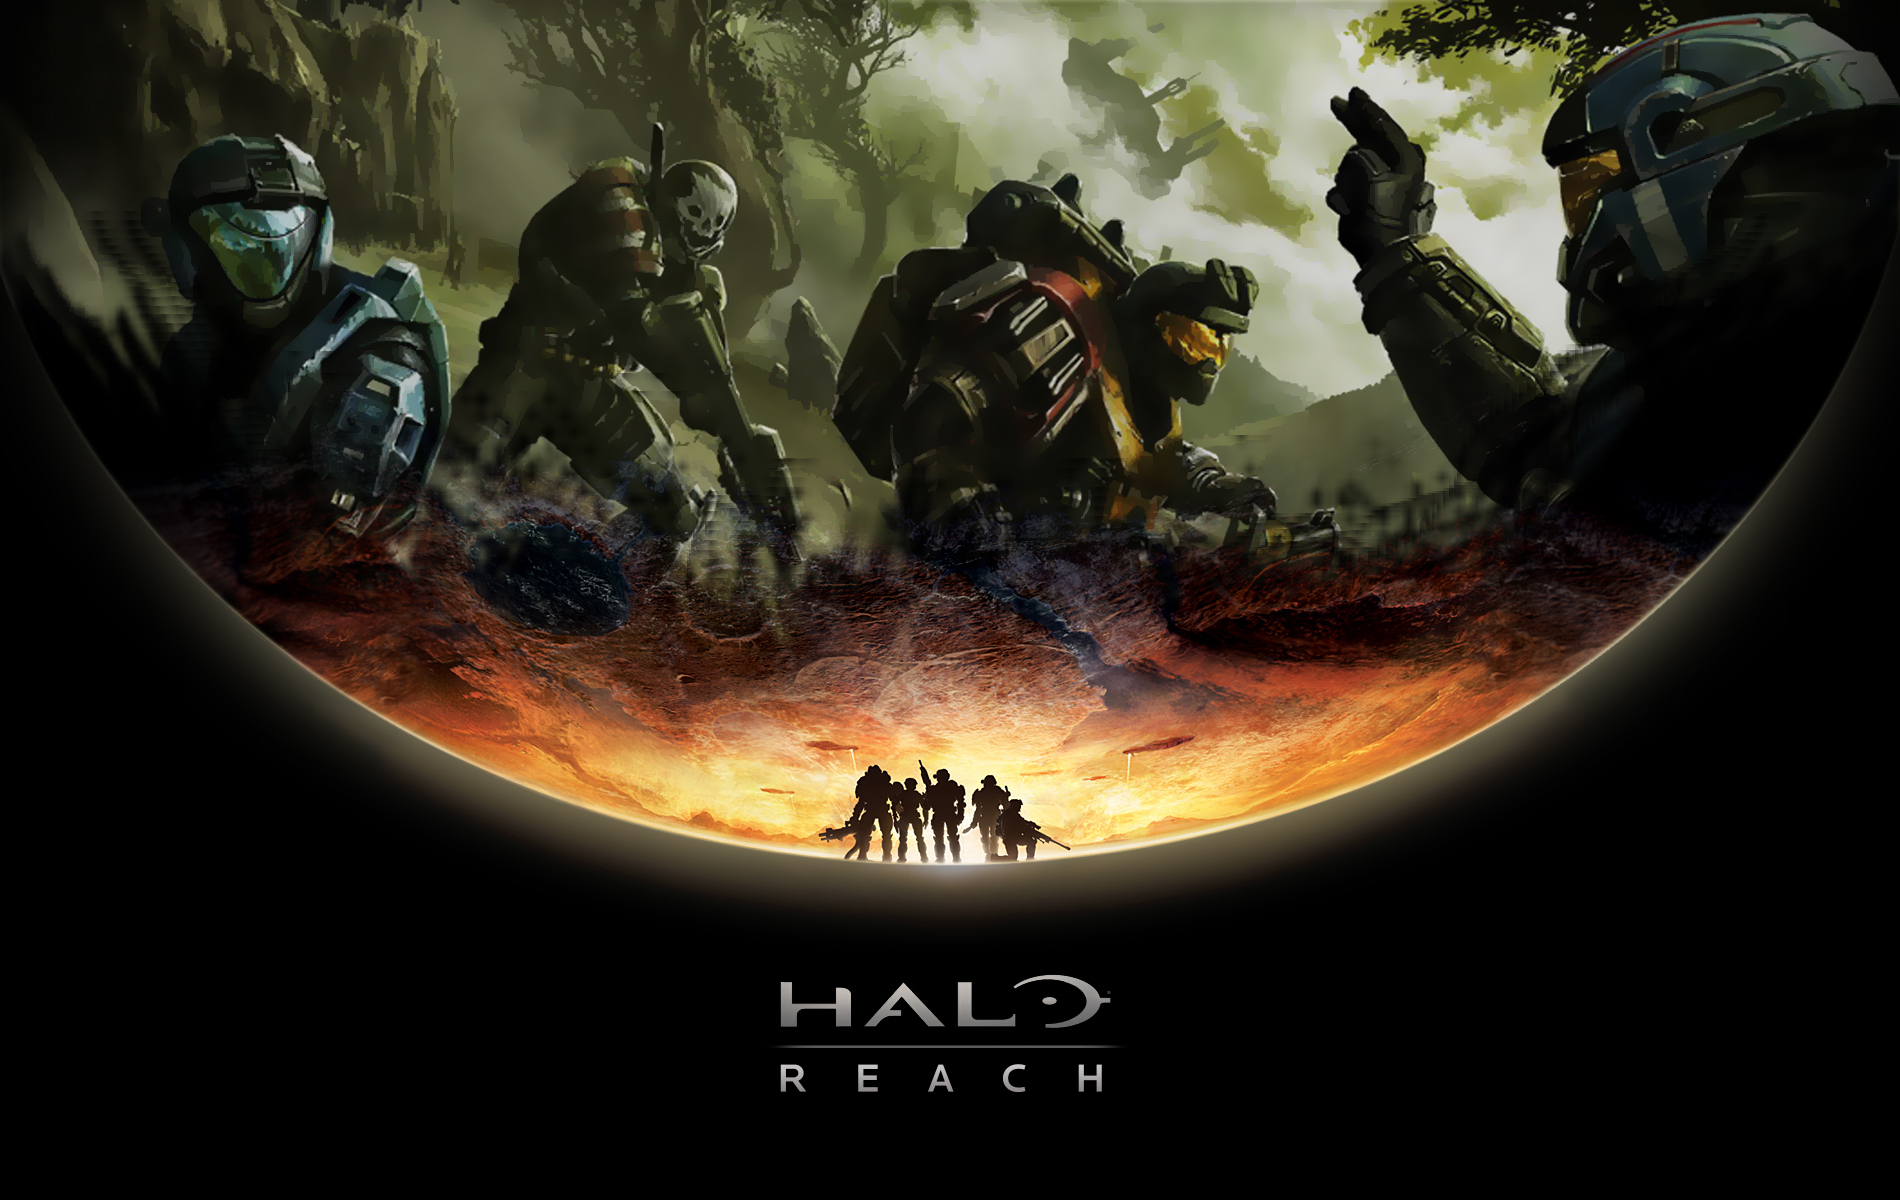 Halo Reach HD Background Wallpapers Amazing Wallpaperz 1900x1200